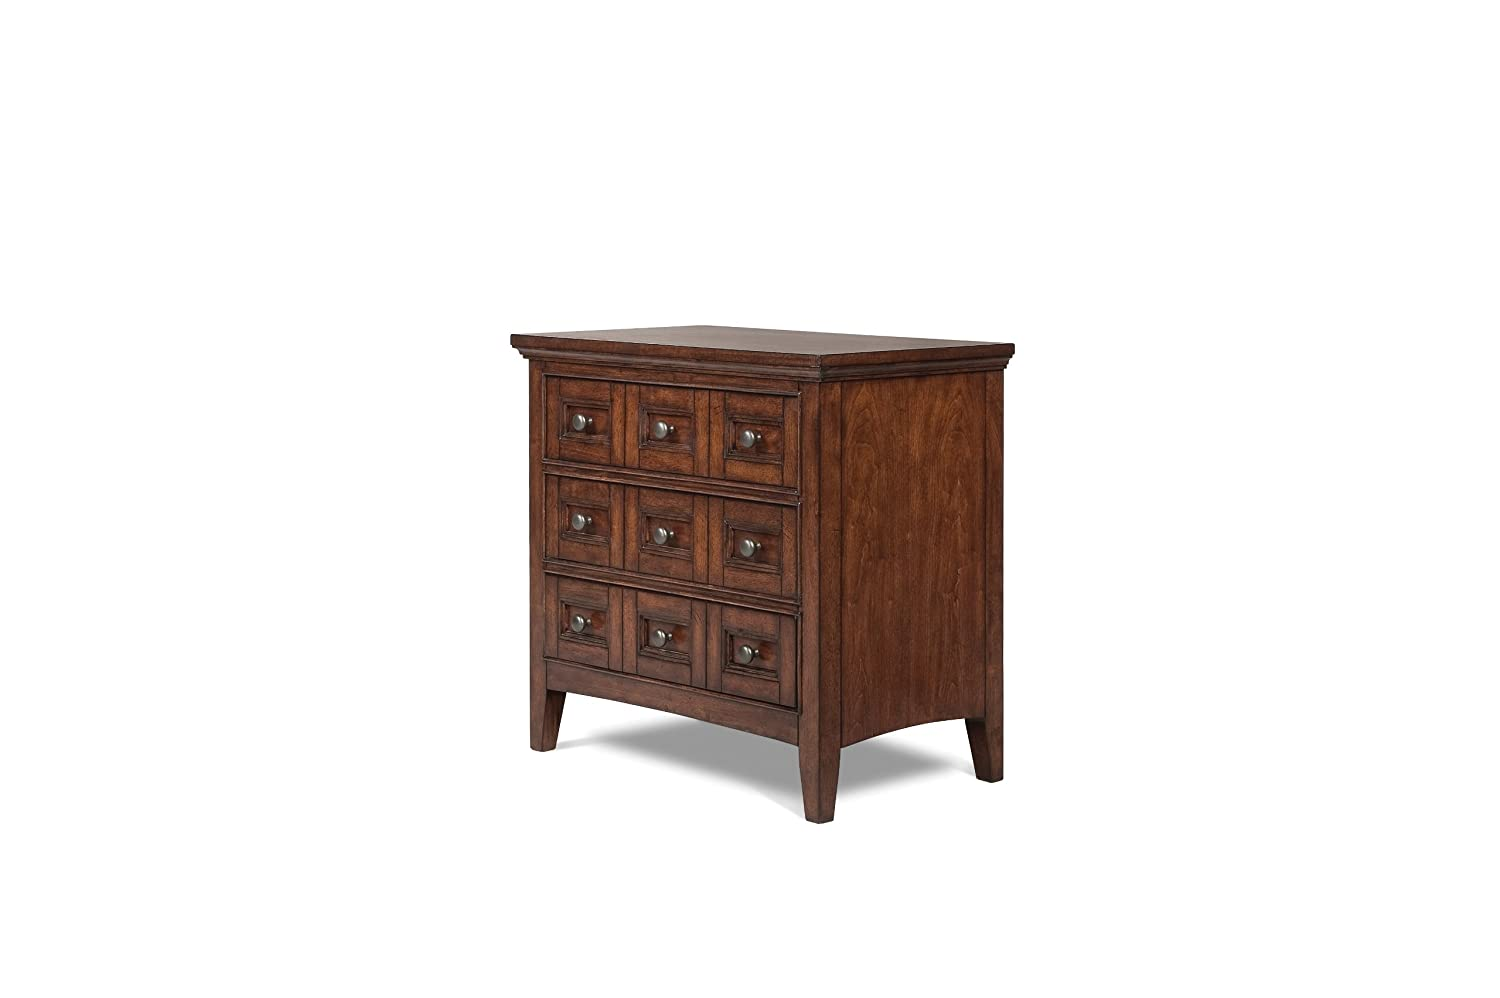 Magnussen Harrison Bedroom Furniture Amazoncom Magnussen B1398 Harrison Cherry Finish With Antique